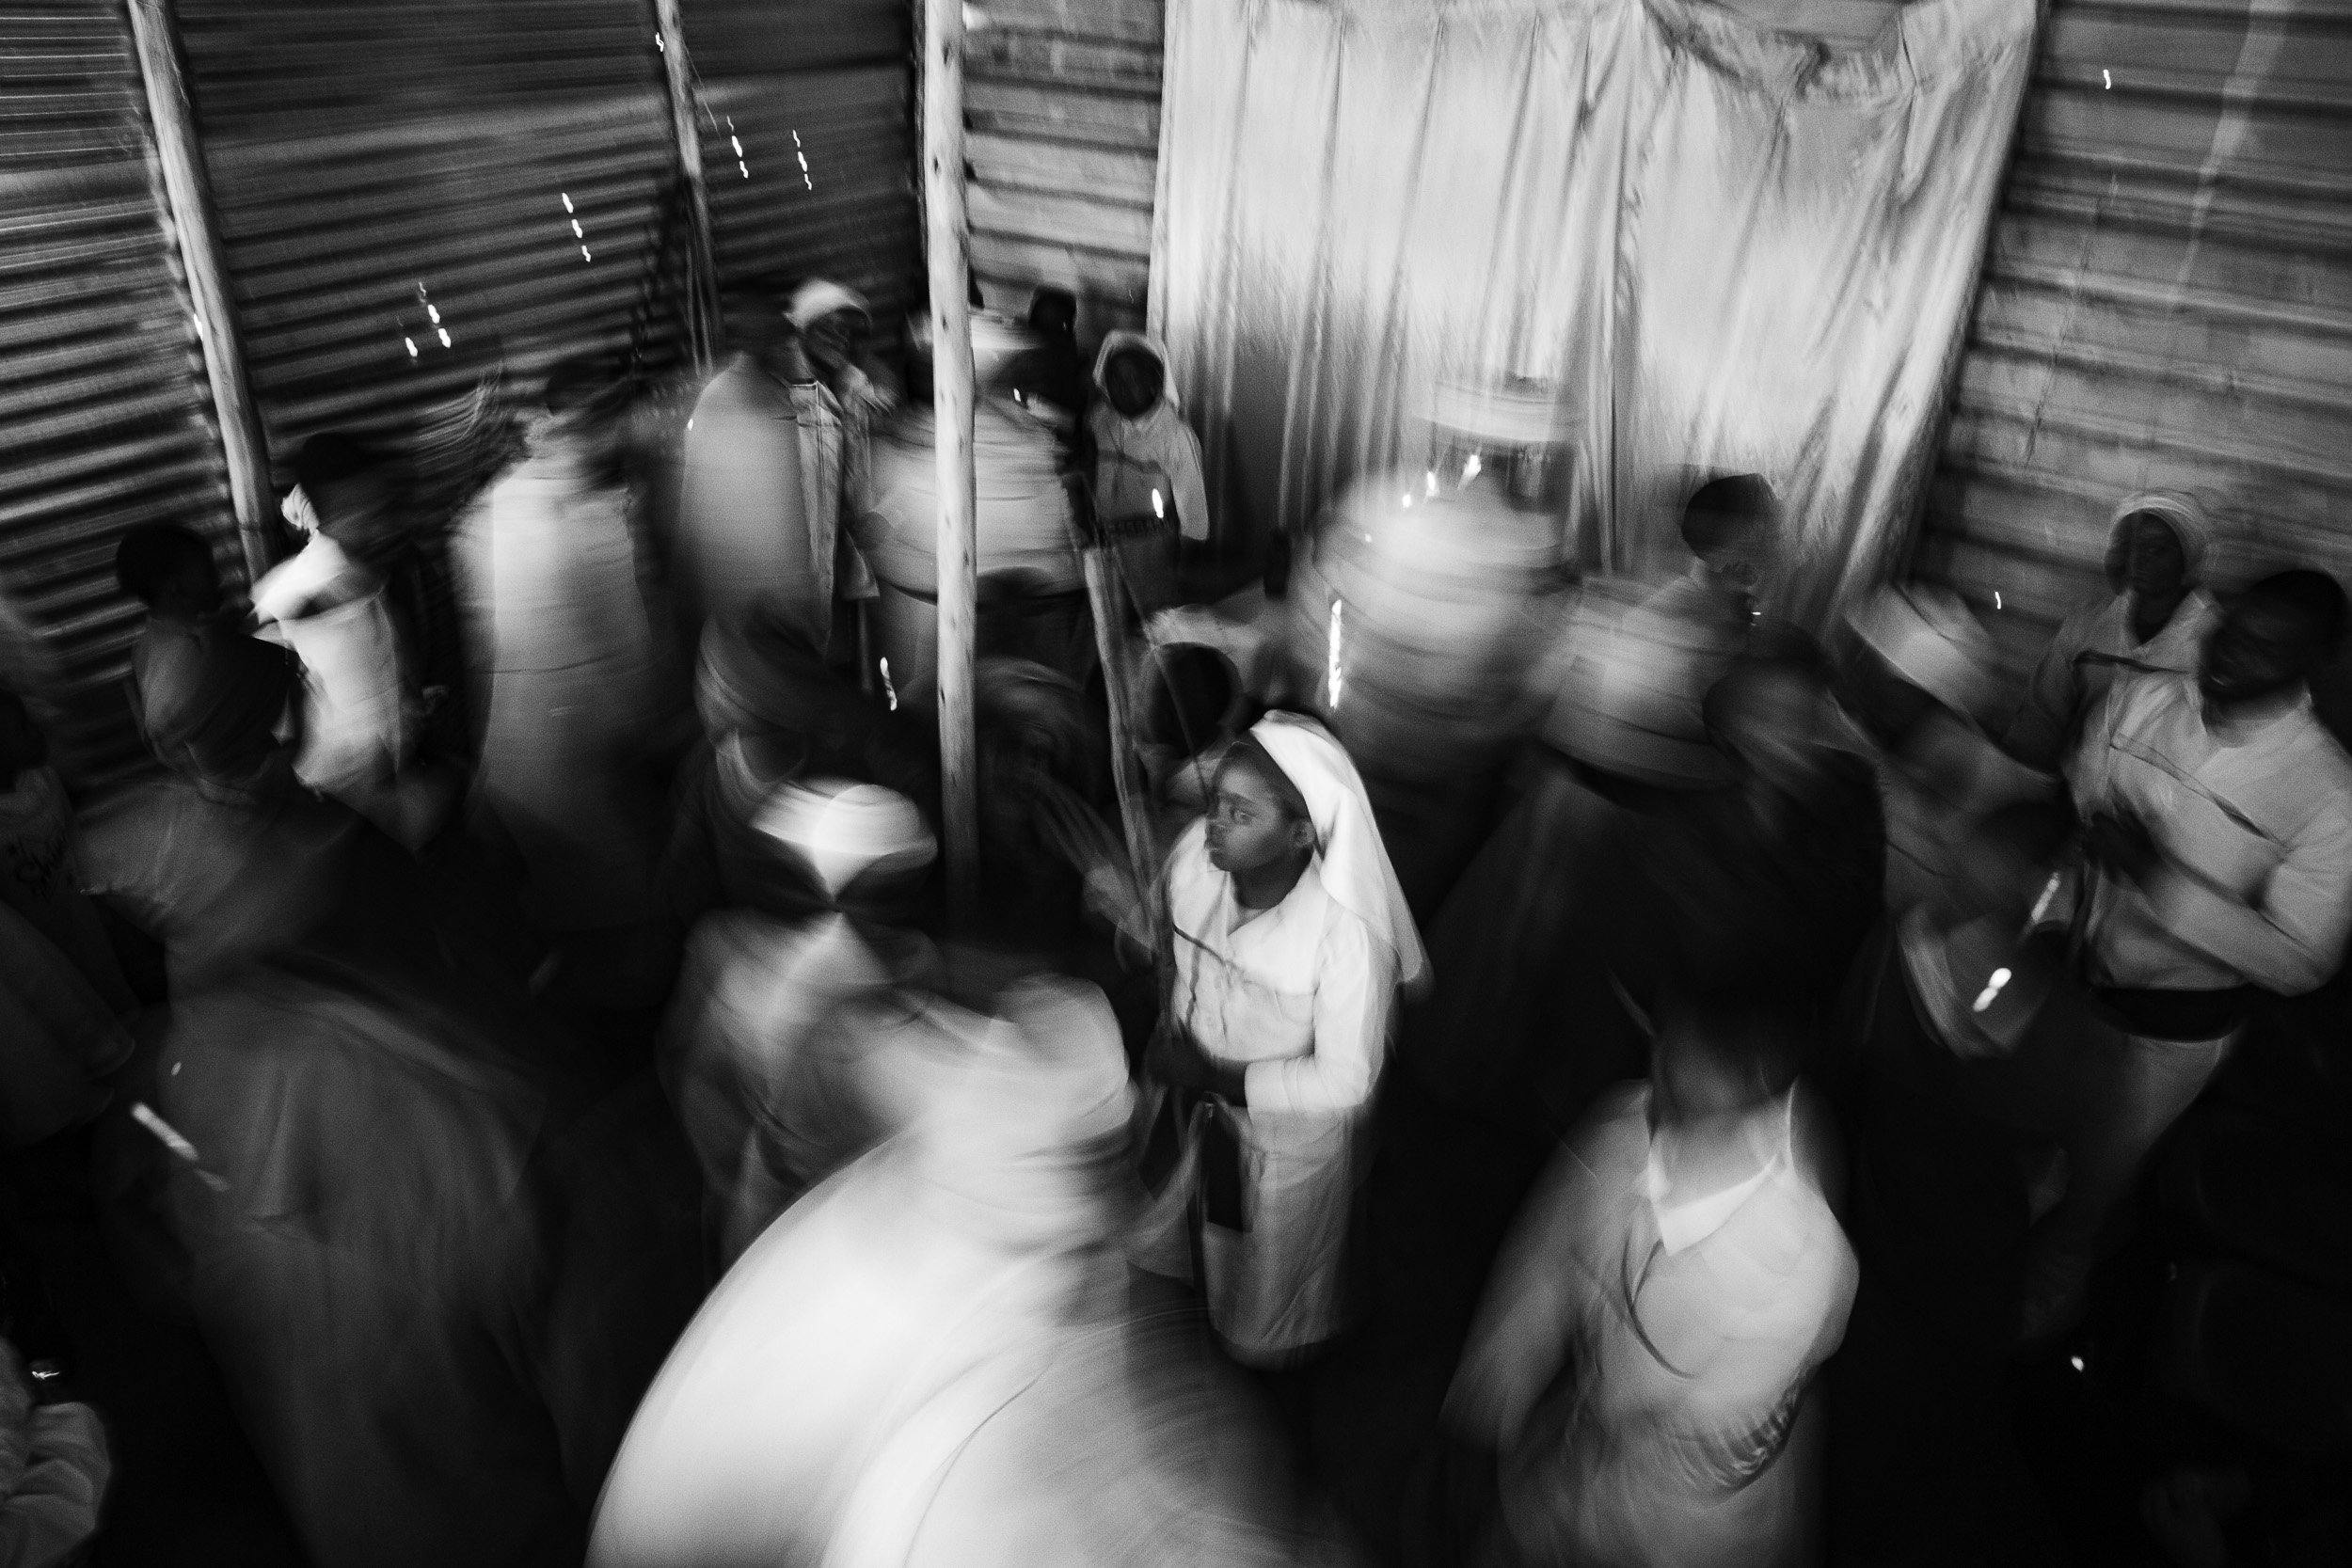 Undated: Hlomani Izikhali I – Congregants sing and pray while moving in a circular, anticlockwise direction at the start of a service at the church near the Nancefield Hostel in Soweto.